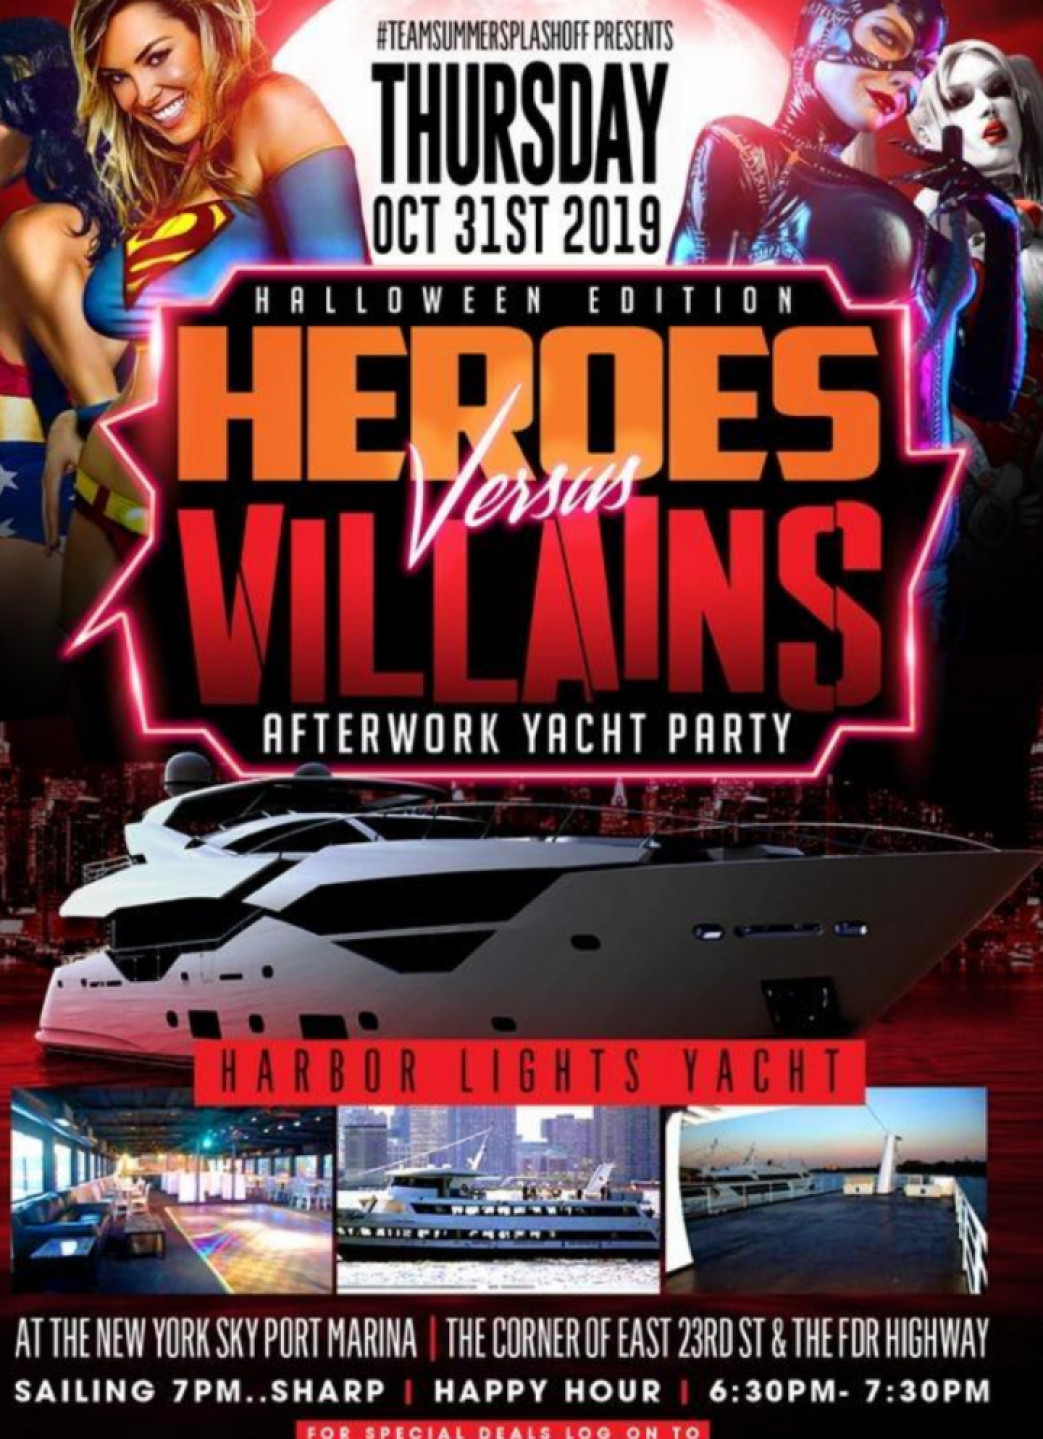 $20 - HEROES vs VIILLAINS HALLOWEEN COSTUME PARTY ABOARD THE HARBOR LIGHTS YACHT. $20.00